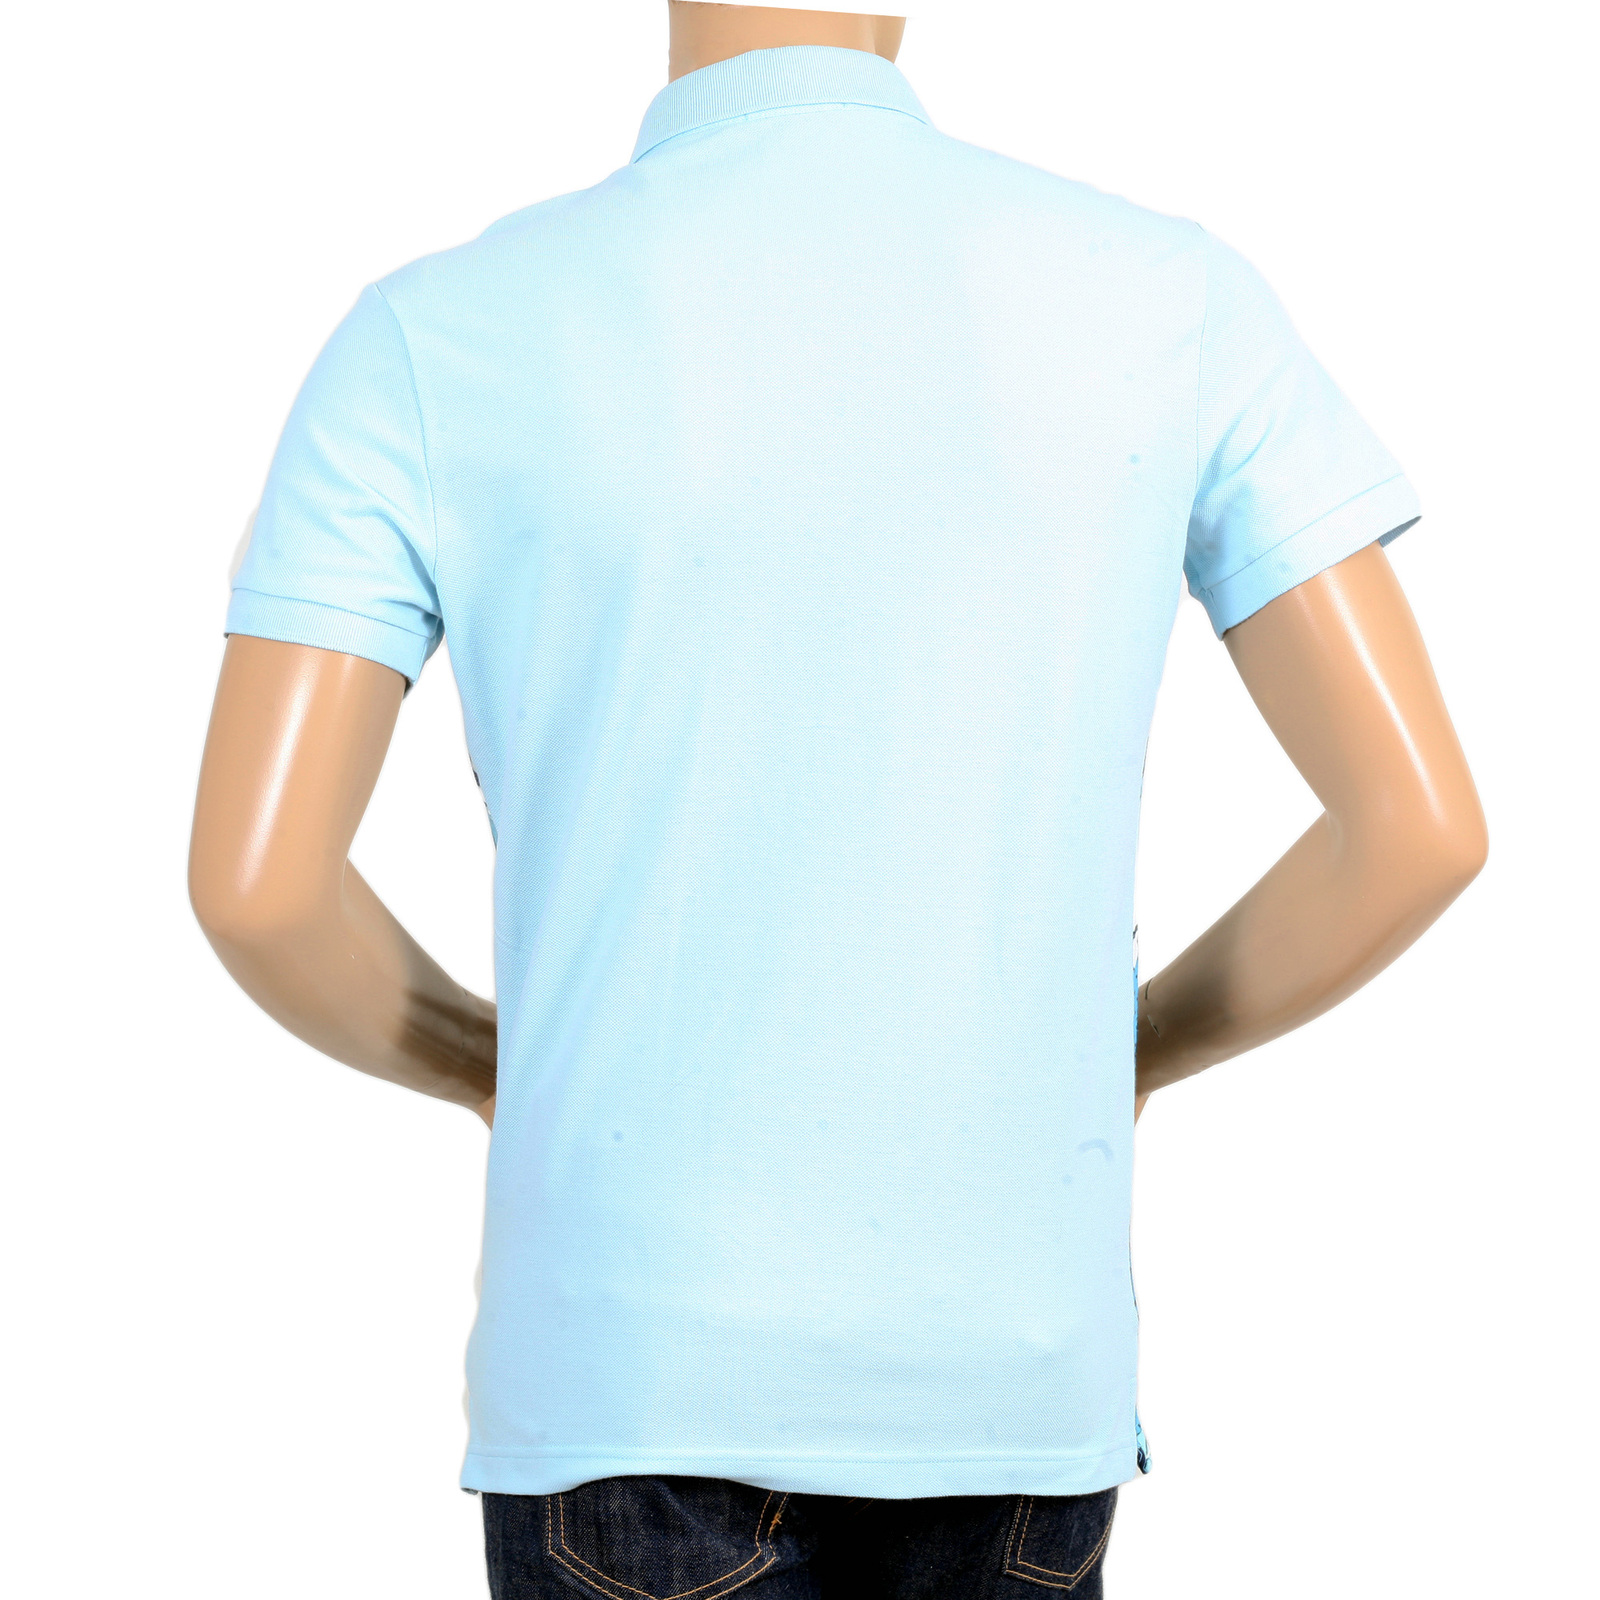 943db988 Mens Olympus Printed Blue Polo Shirt with 3 Button Placket and Plain Sky  Blue Back by Versace Jeans VERS6166